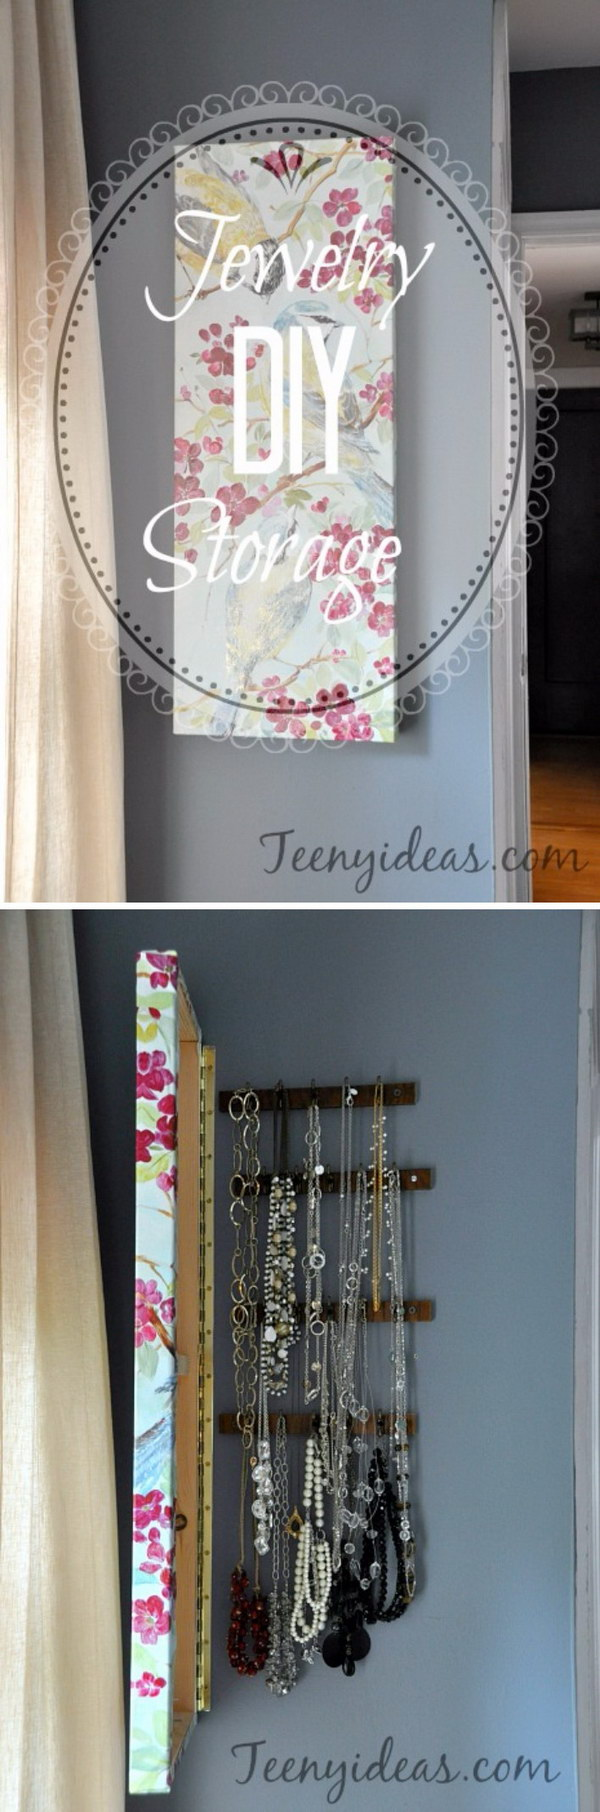 DDIY Hidden Jewelry Storage Behind Wall Canvas.